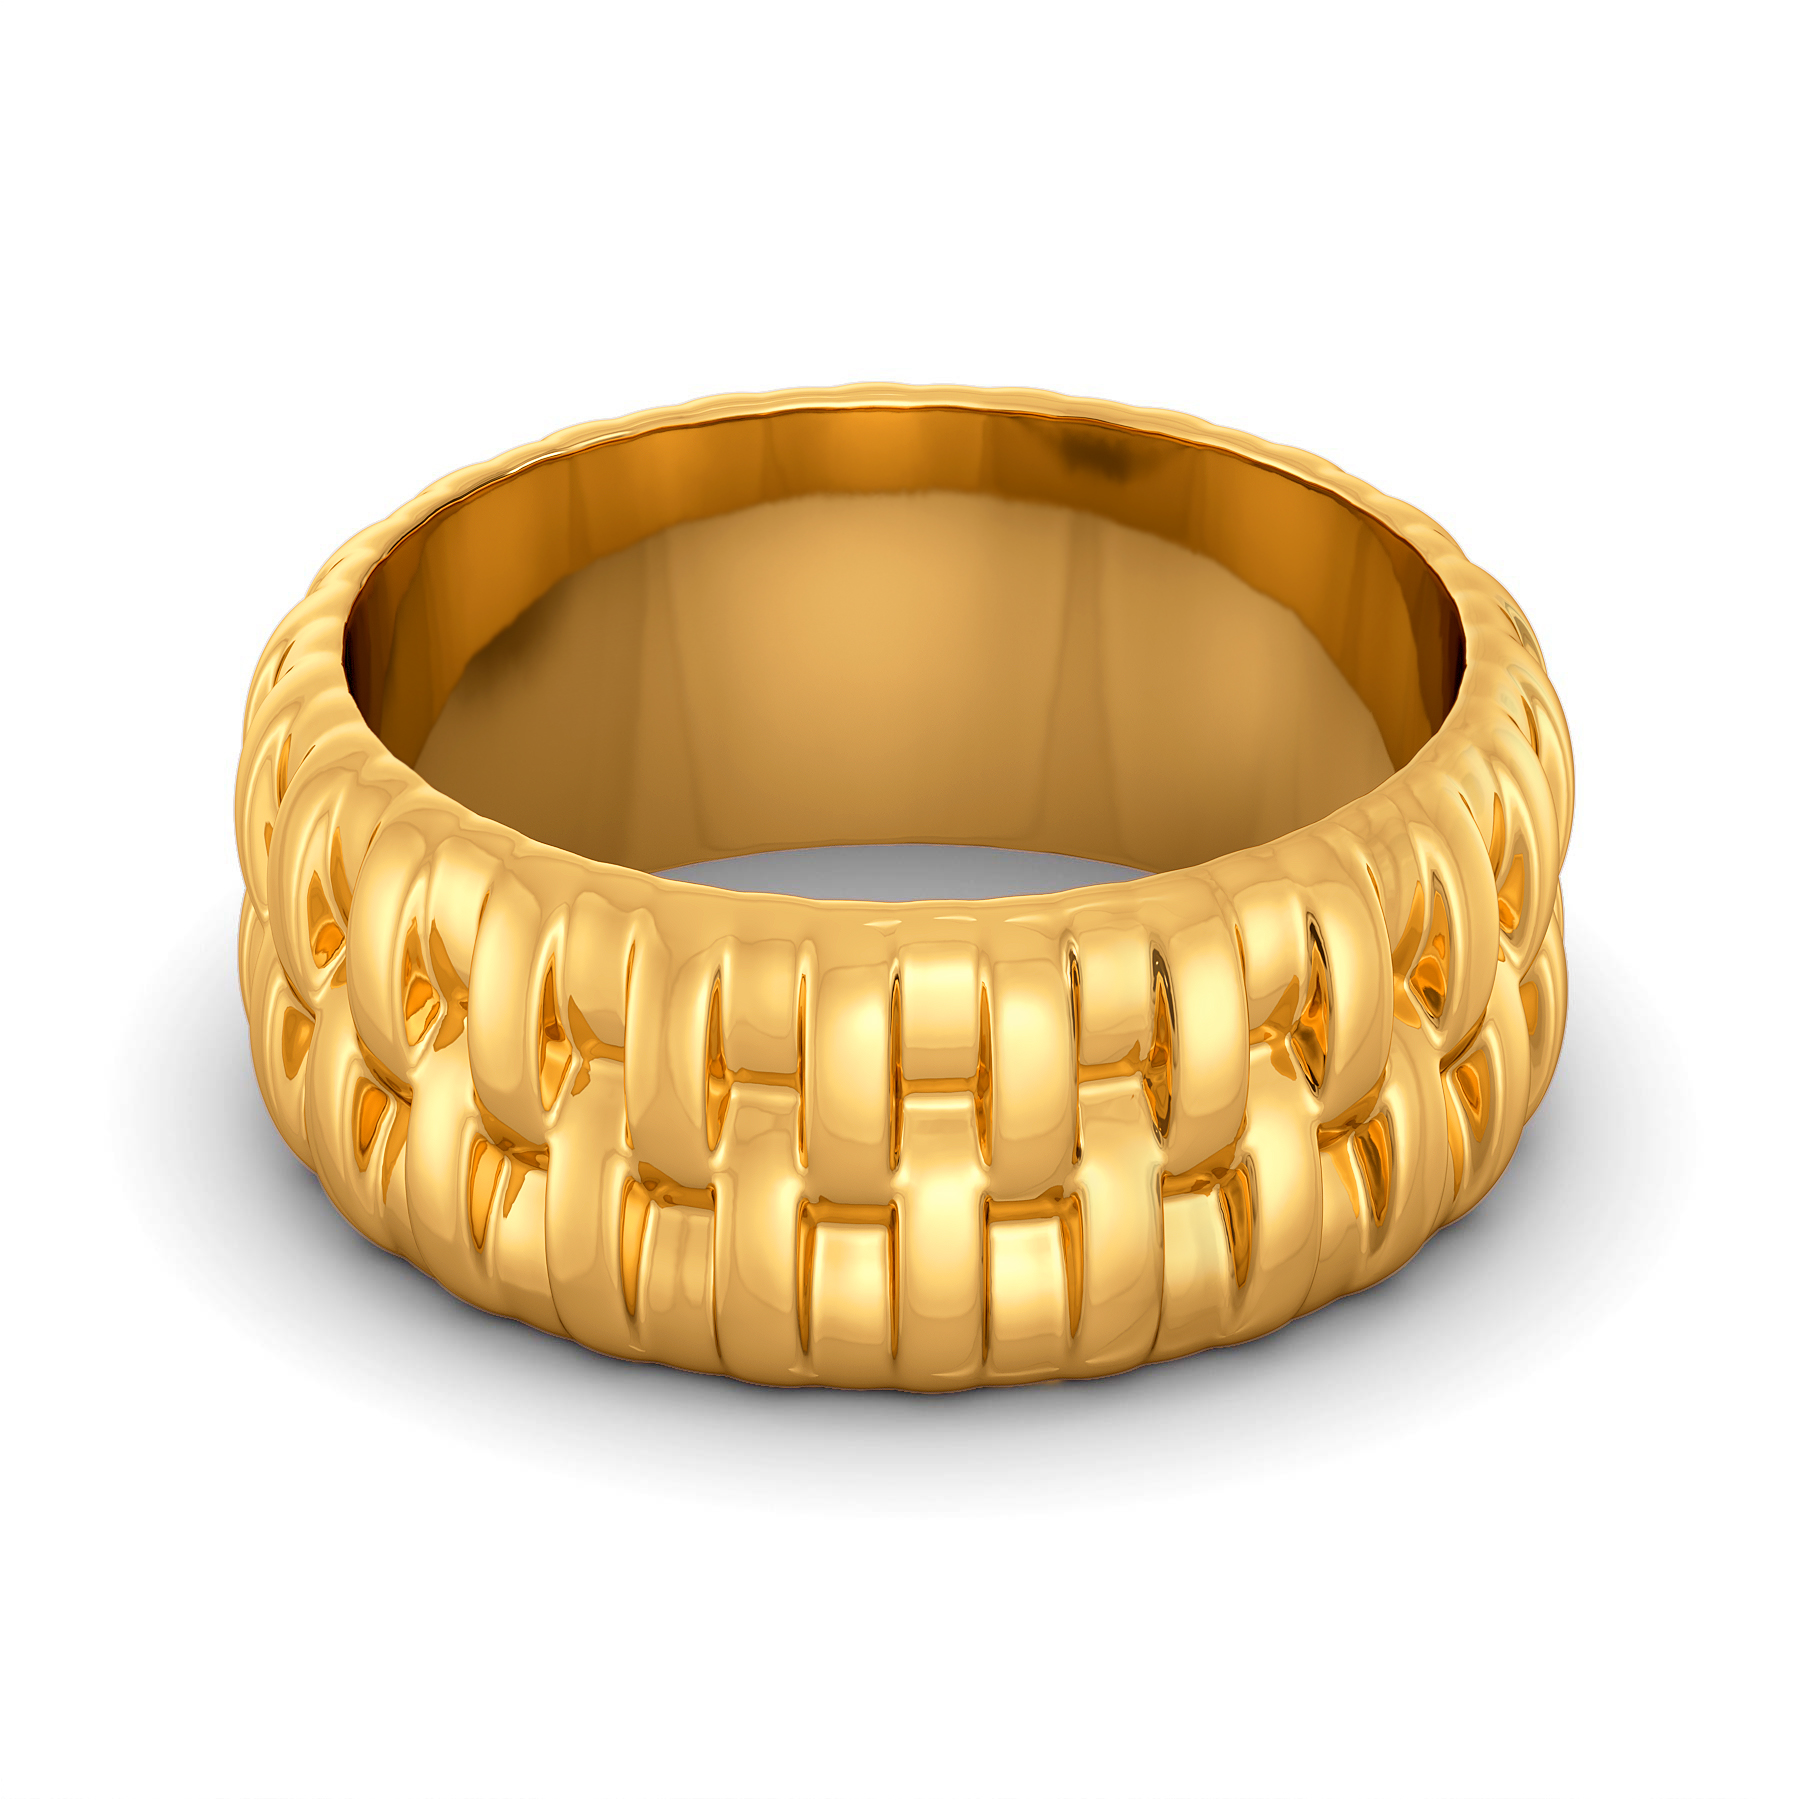 Weave Vision Gold Rings